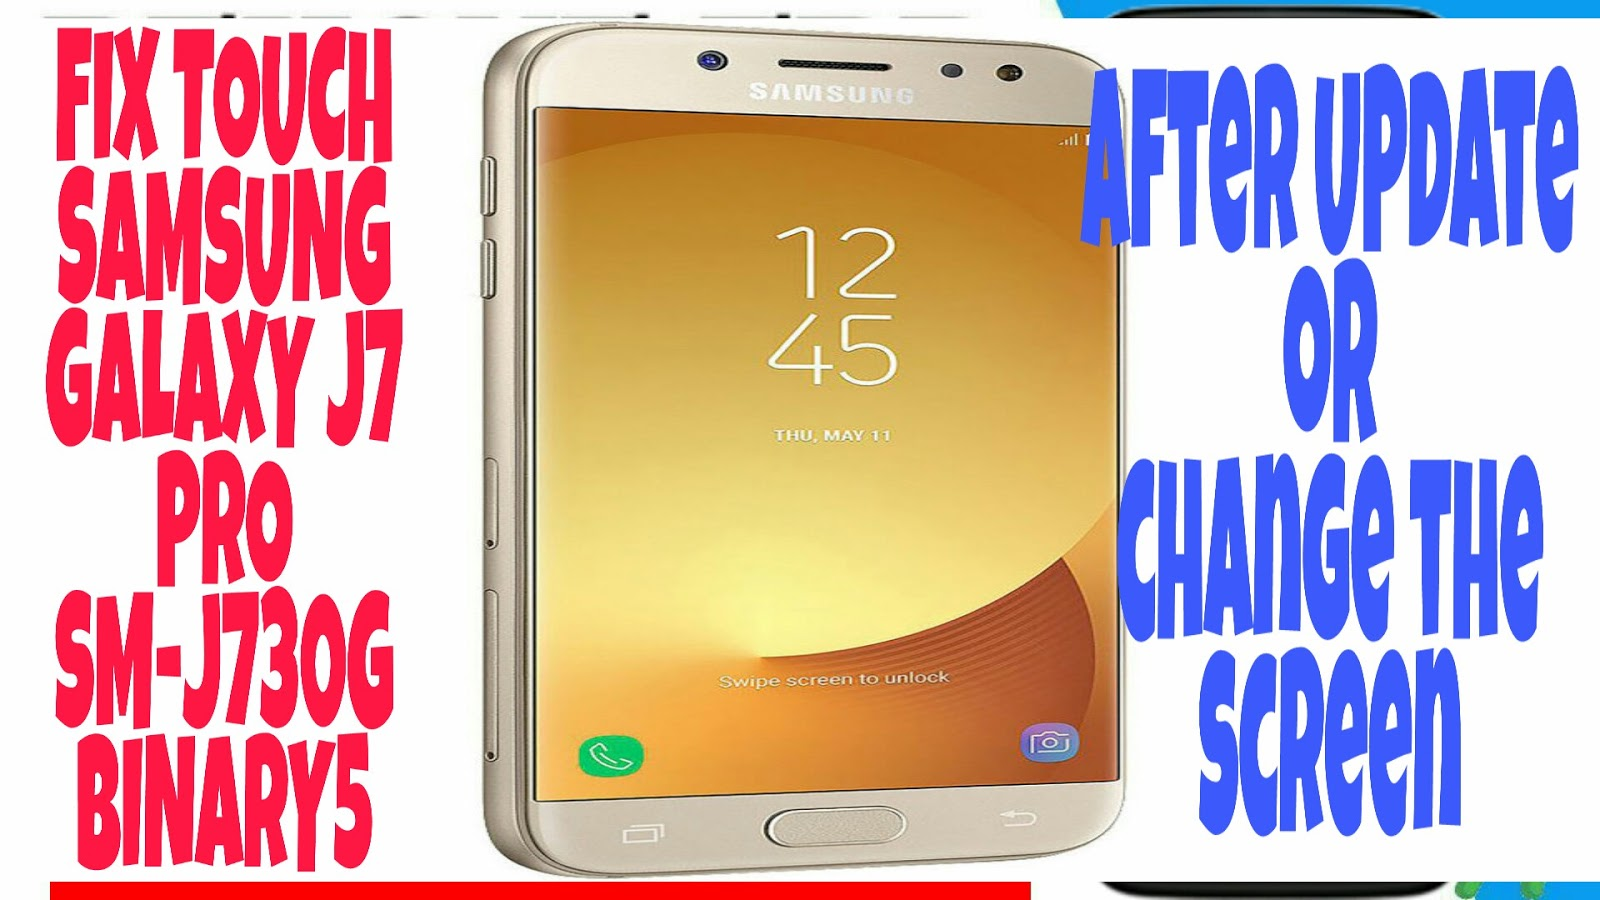 Top Five Root Samsung Galaxy J7 Pro Sm J730f Android 8 1 0 Oreo - Circus